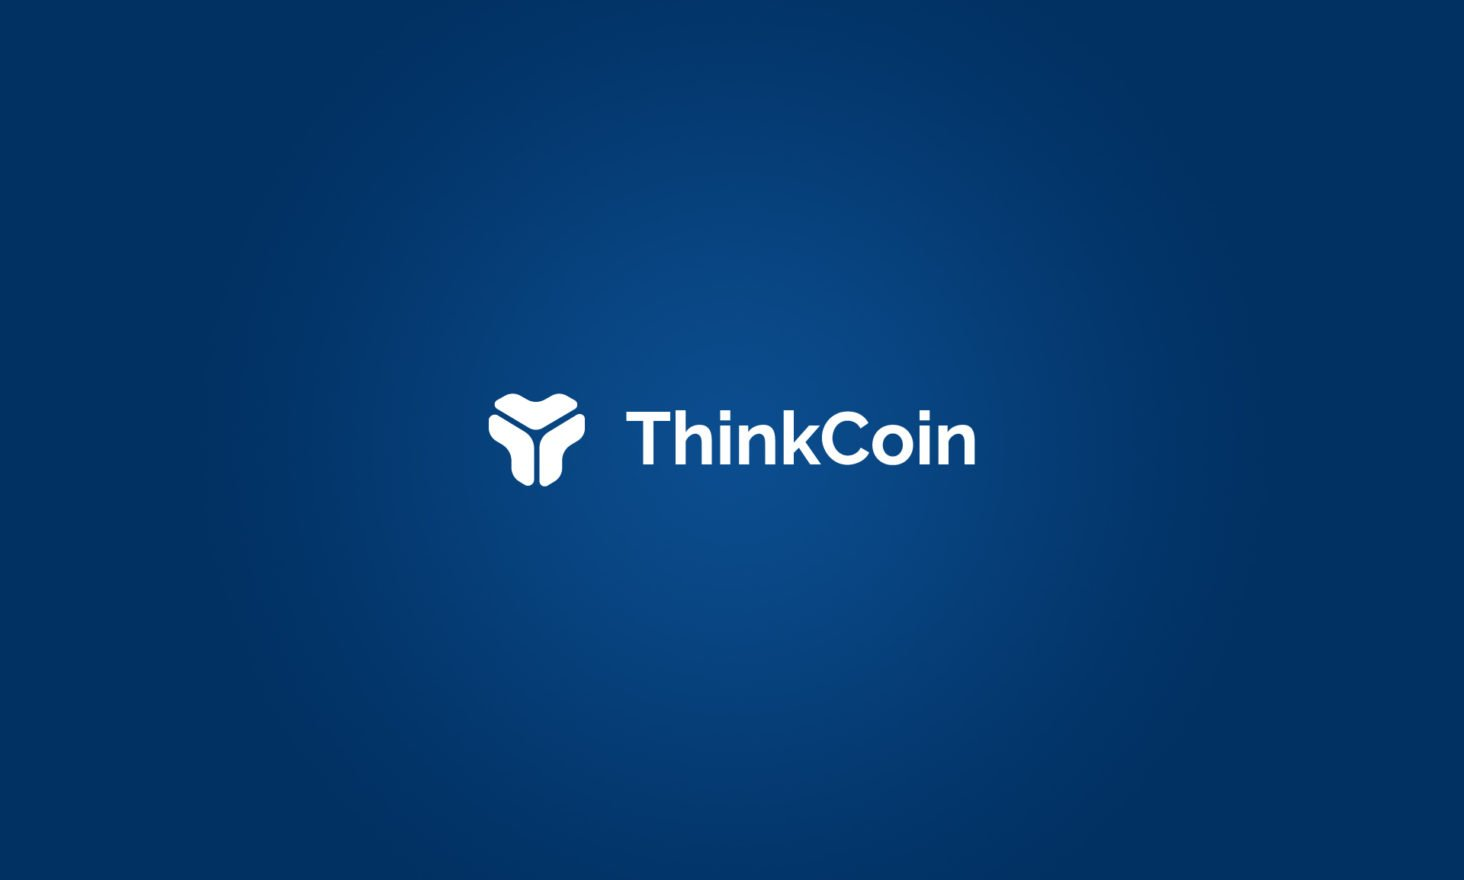 Specialist Trading Token ThinkCoin Launches for Financial and Crypto Markets